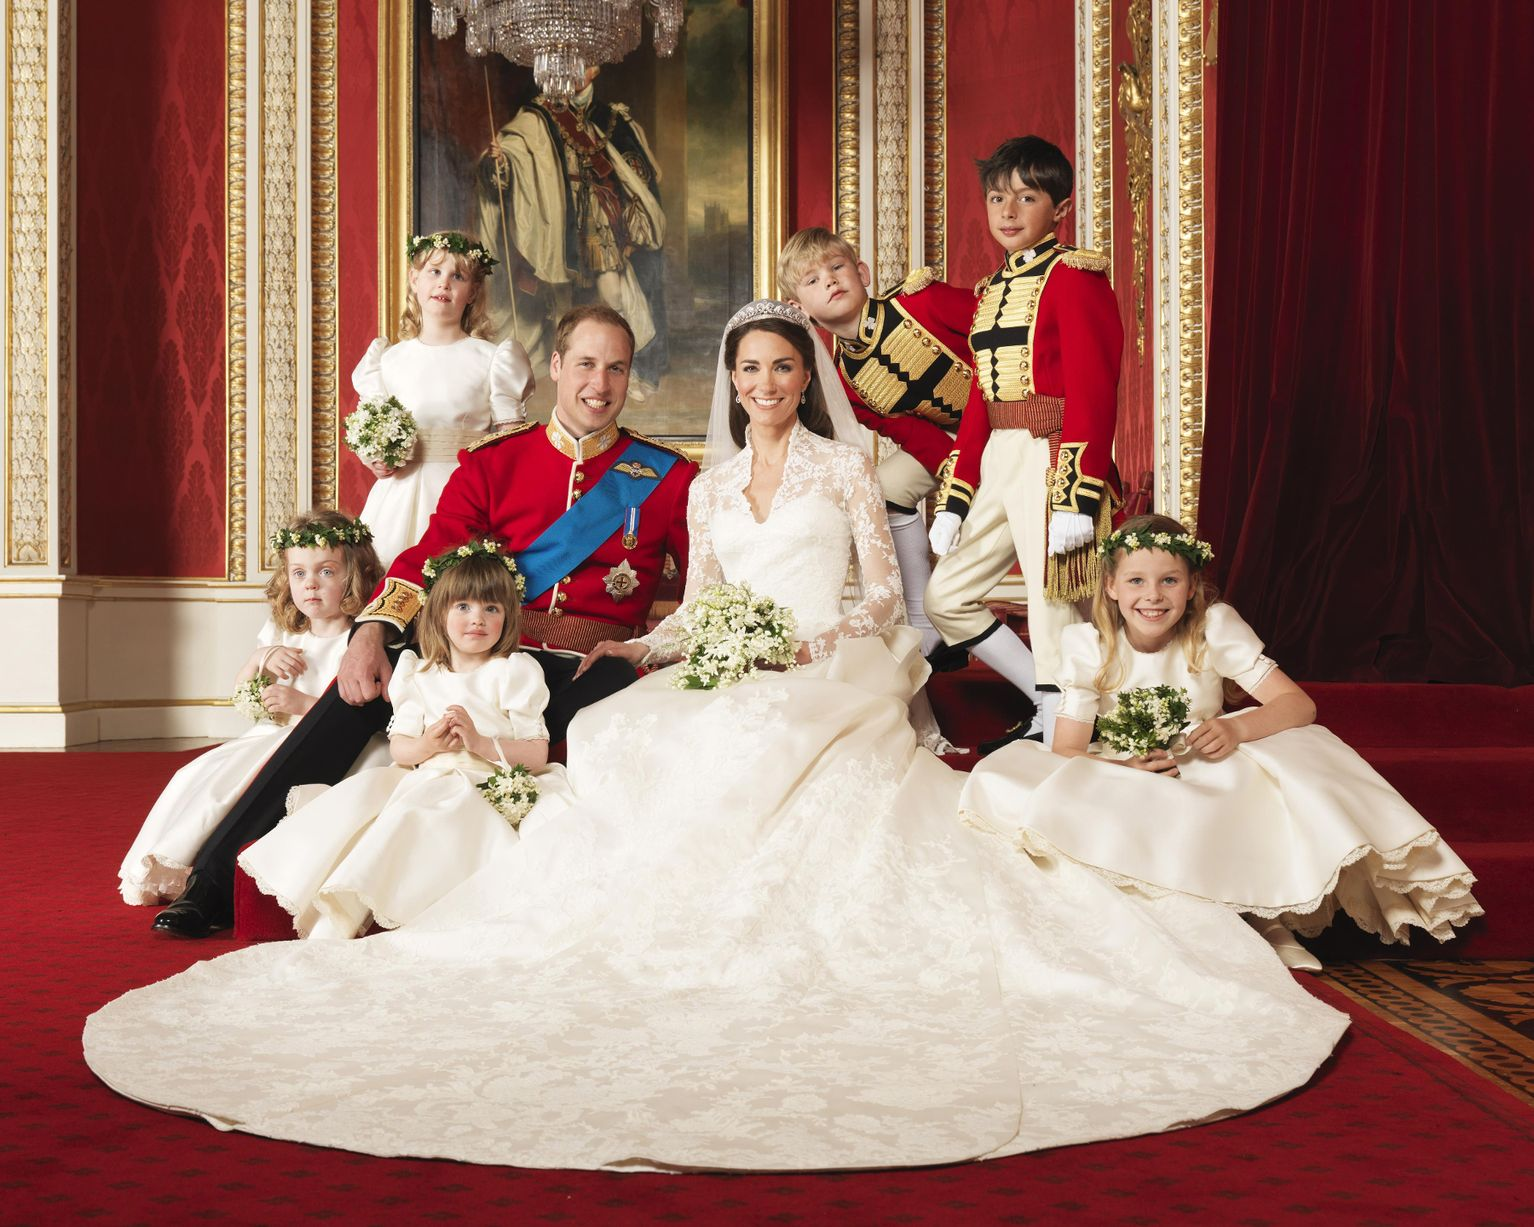 Official-Wedding-Photographs-Prince-William-and-Kate-MIddleton-in-the-throne-room-at-Buckingham-Pa.jpg